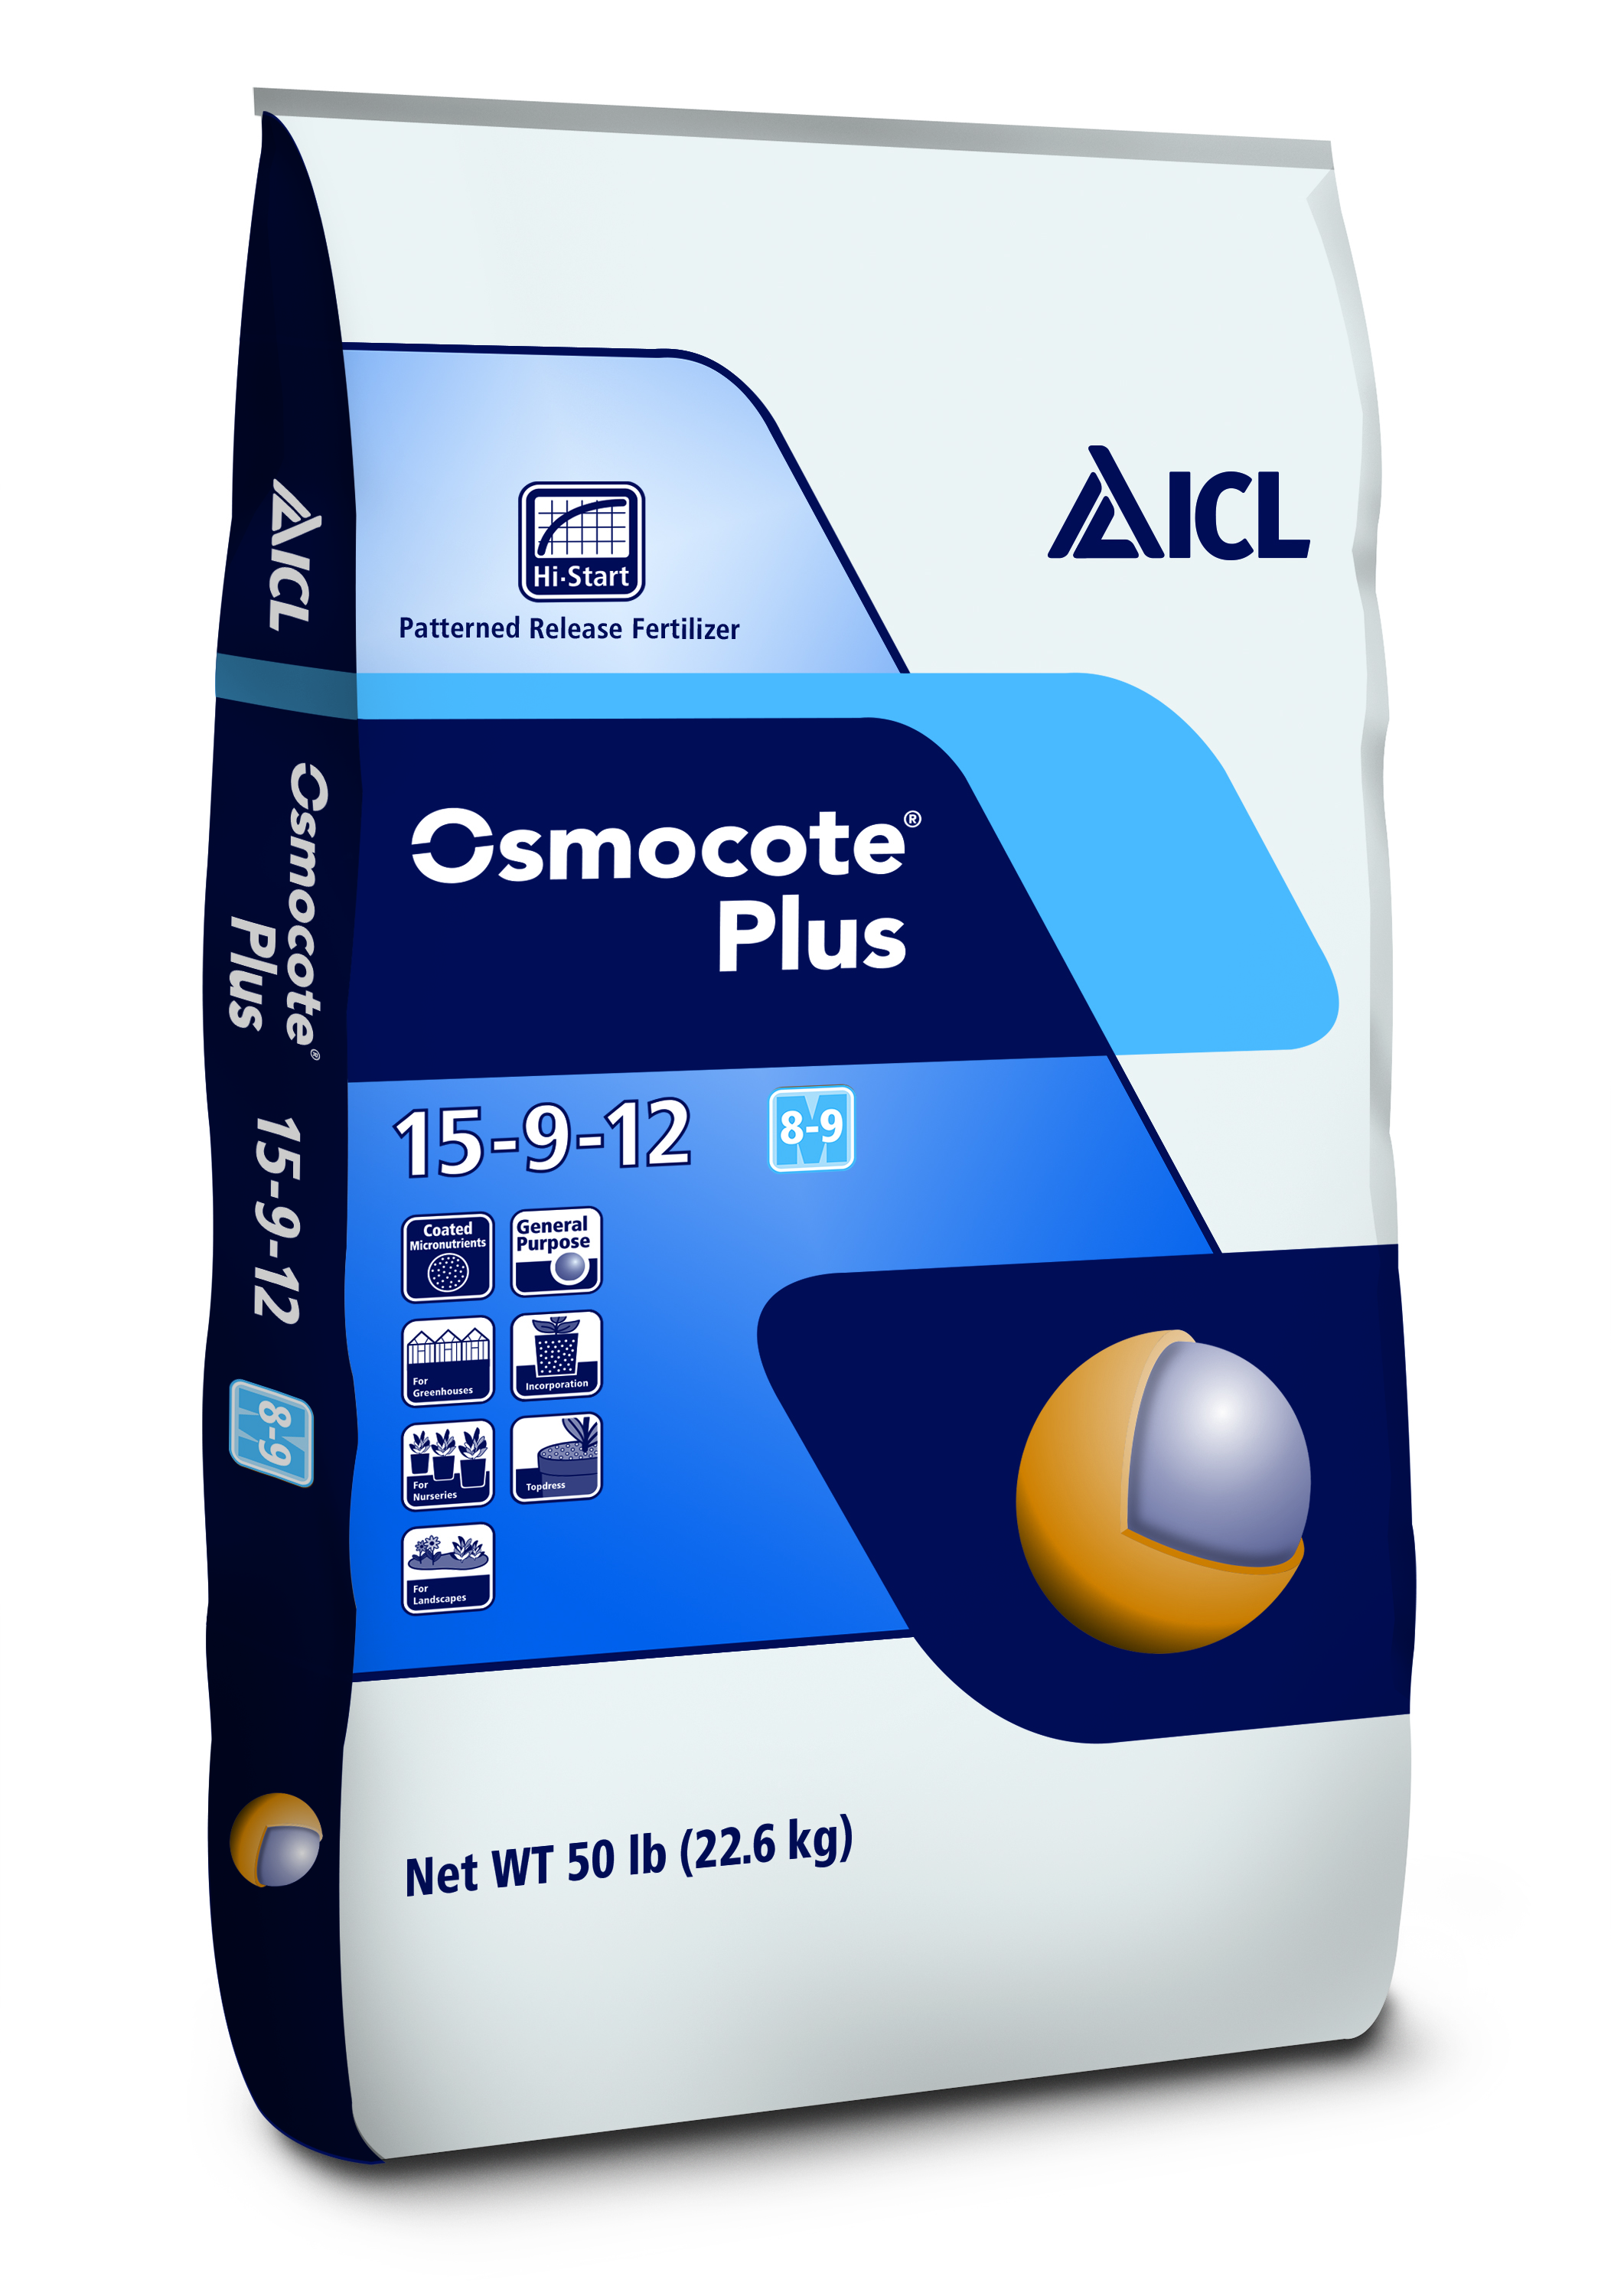 Osmocote Plus 15-9-12 8-9M Hi-Start